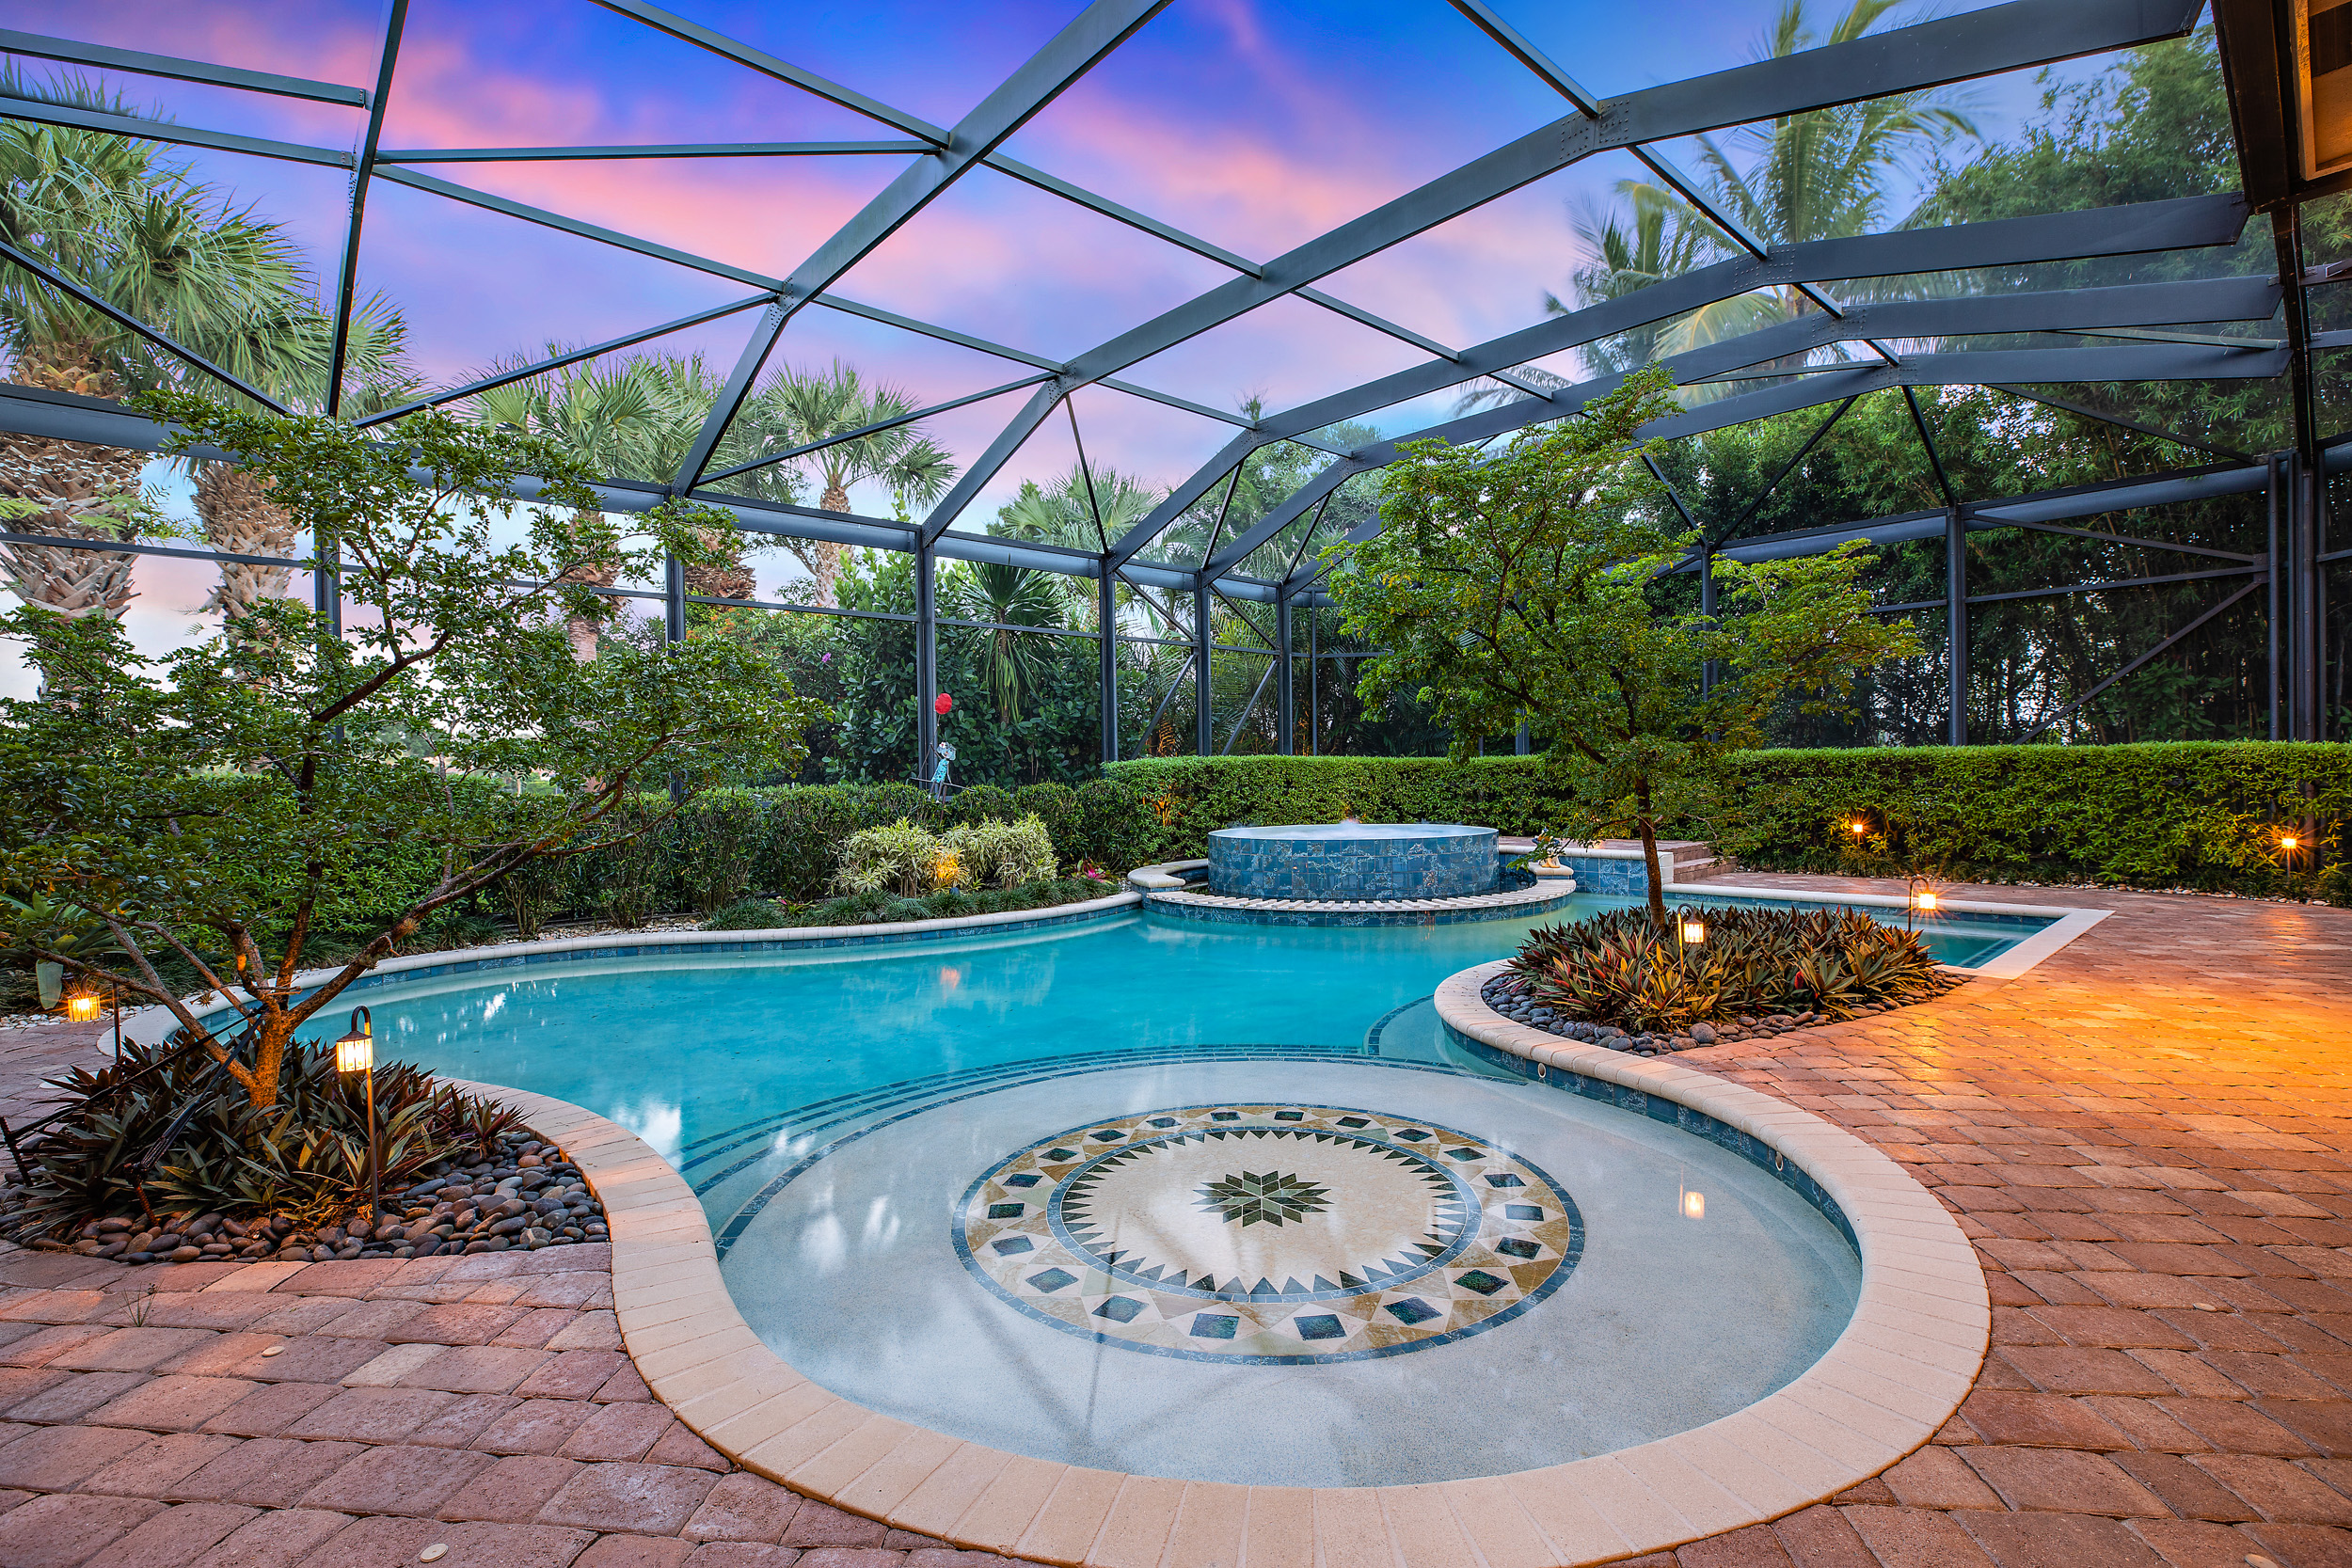 - The home's sparkling freeform pool is simply magnificent with a beautiful custom waterfall feature providing tranquil ambiance from the pool's elevated, oversized spa, which is enough for you to full stretch out and live your best life.